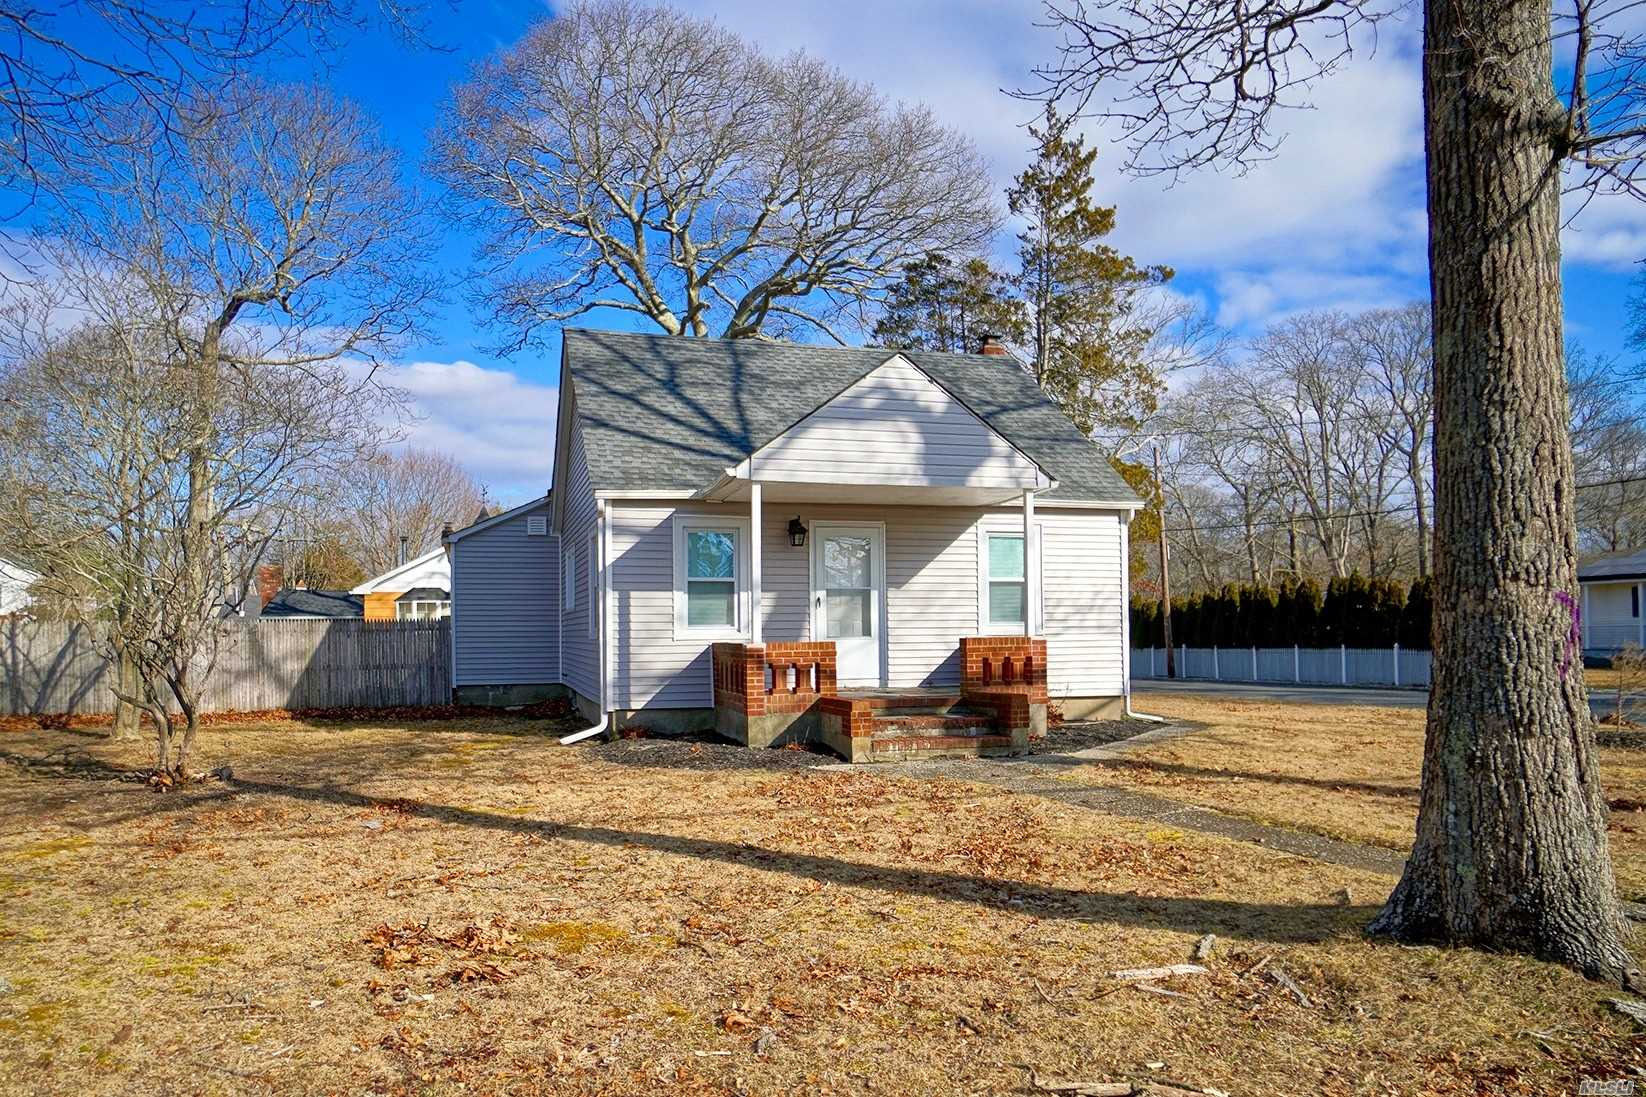 Beautifully renovated property with 3 bedrooms, Master Suite on the 2nd level. 2 full baths. Very East of the town so it's quiet and private.  Property is completely fenced and the side entrance of Dahlia is convenient and makes for easy parking in driveway or on the street.